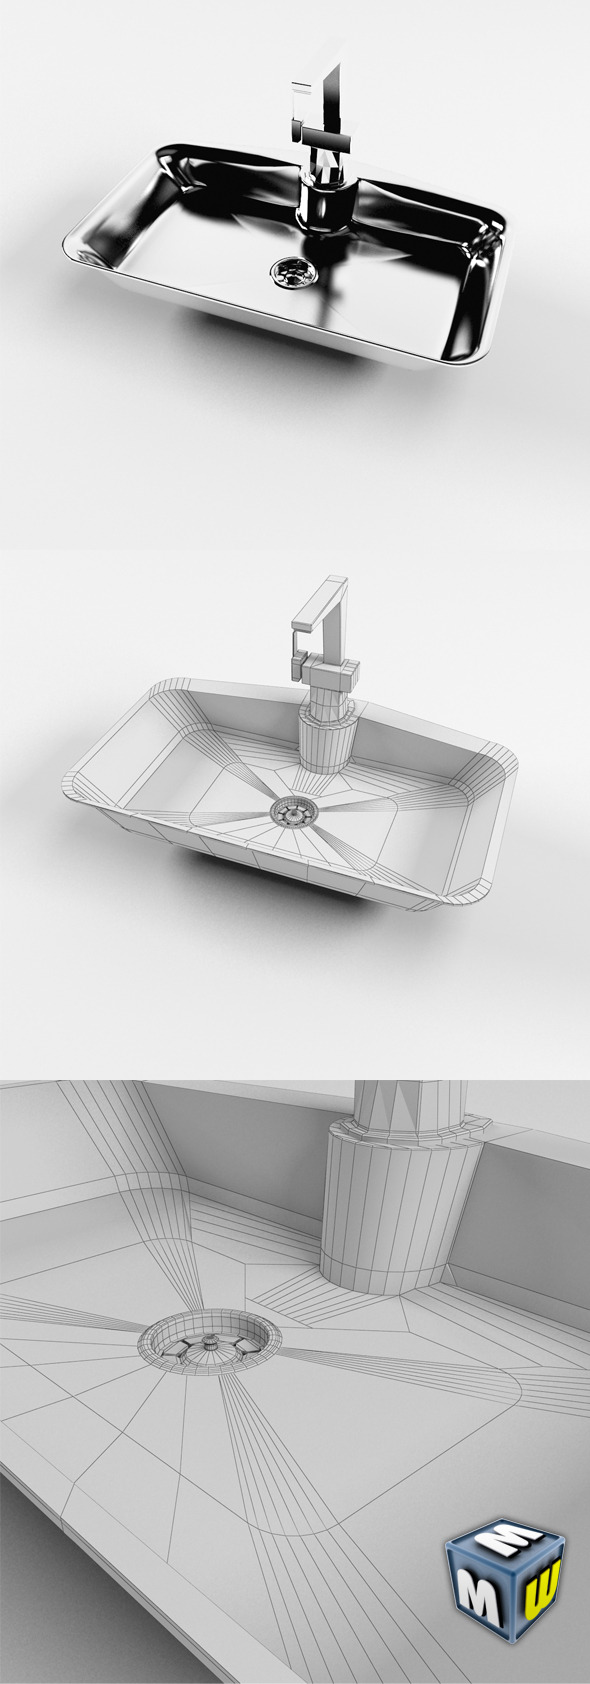 Sink MAX 2011 - 3DOcean Item for Sale